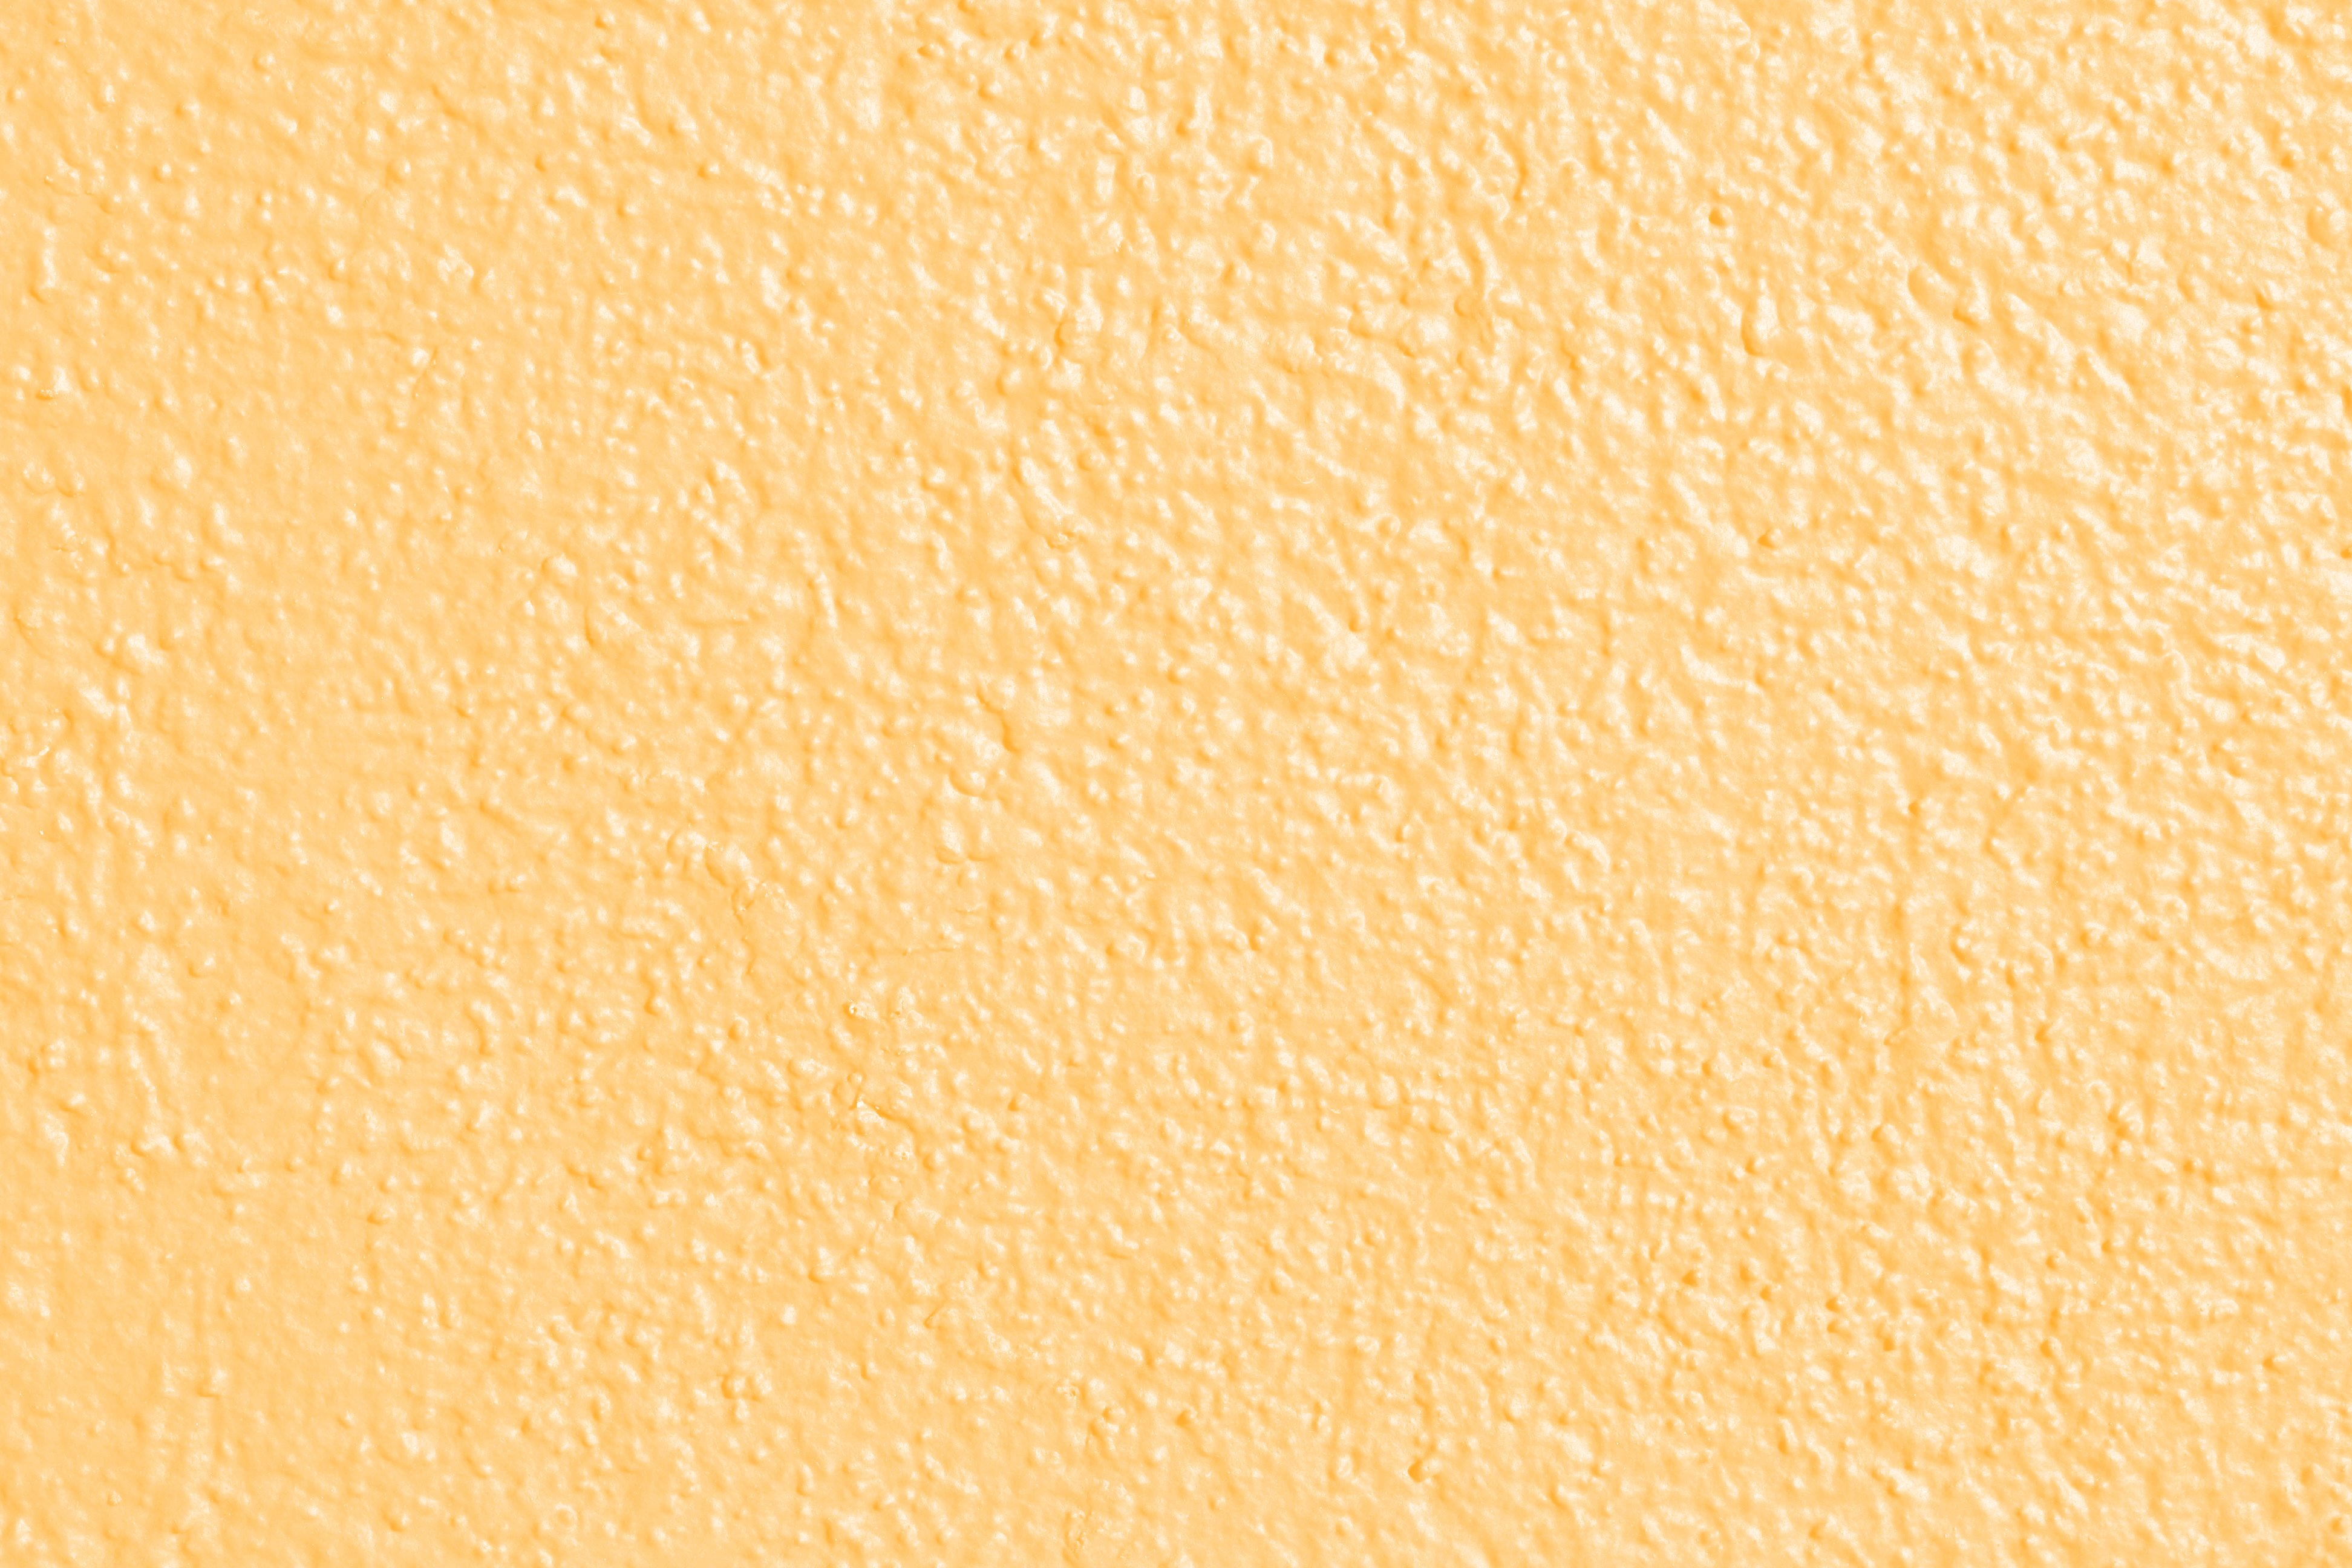 Peach or Light Orange Colored Painted Wall Texture Picture 3888x2592